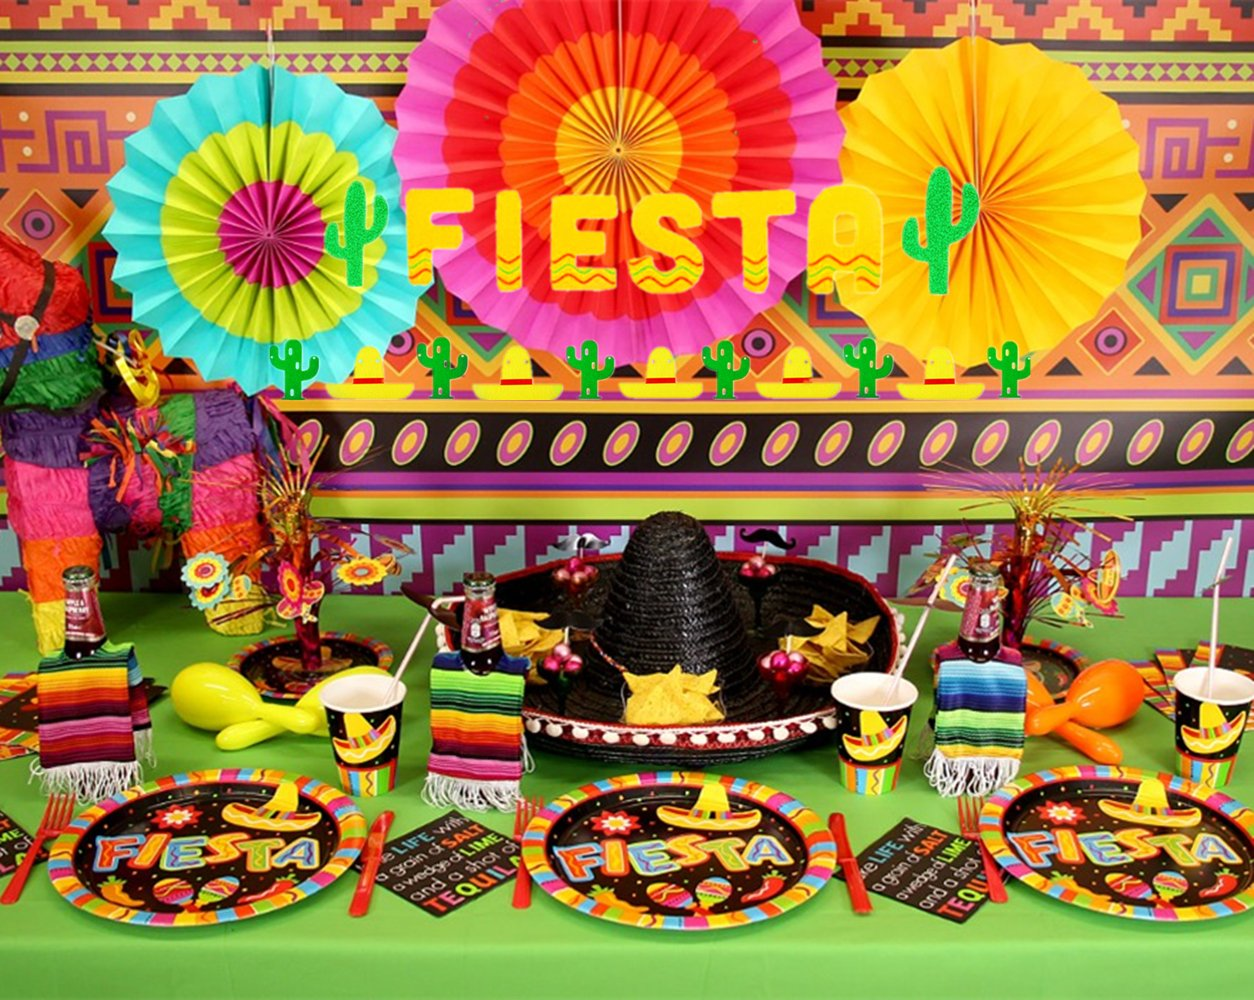 (Set of 3) JeVenis Fiesta Banner Cactus Garlands Cinco De Mayo Banners Rosettes Party Decorations Fiesta Party Supplies Wedding Birthday Baby Shower